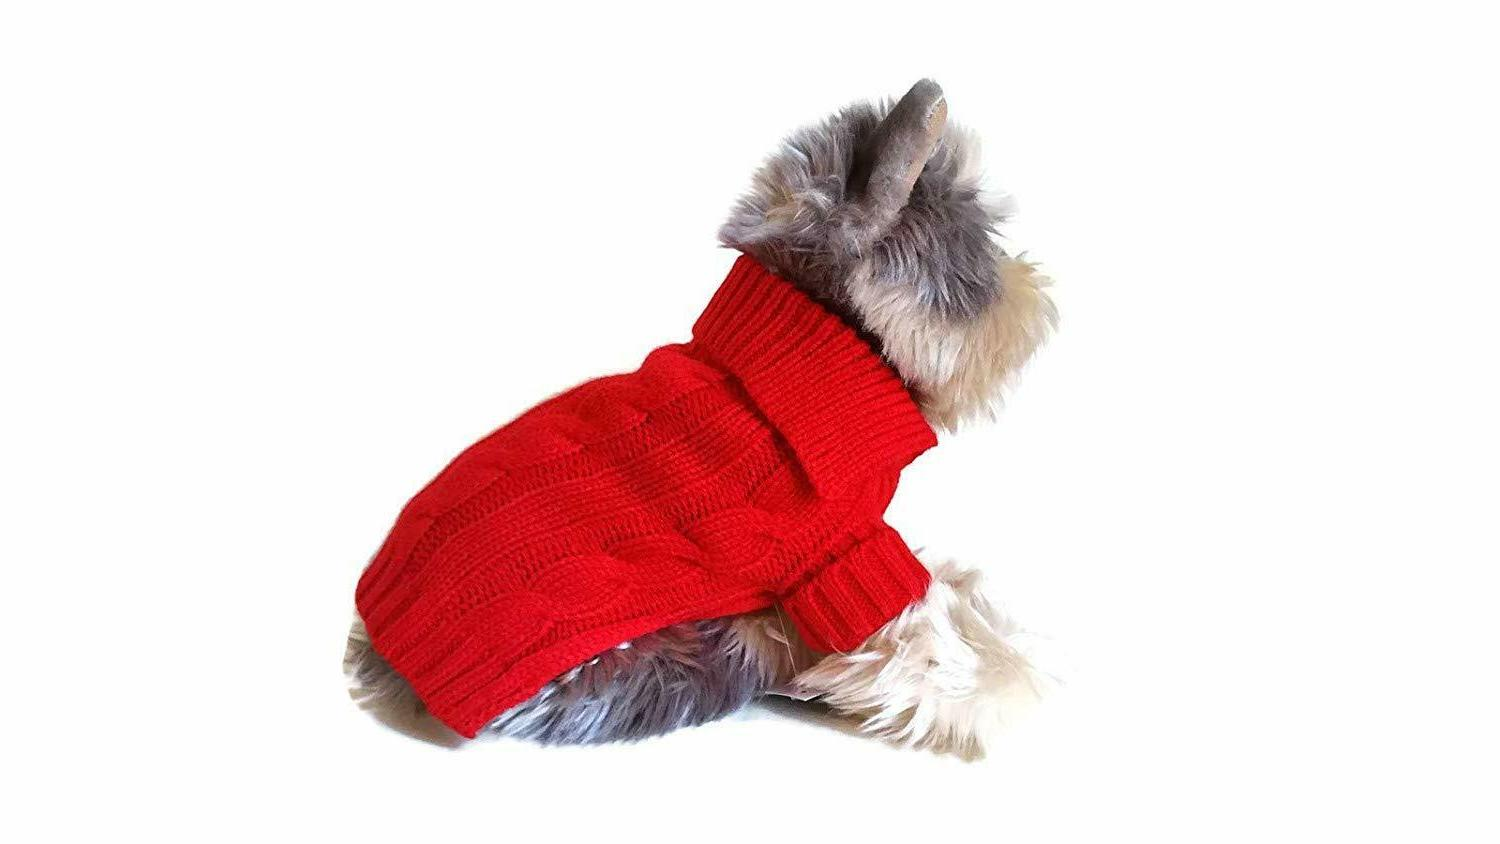 Le Petit Small Dog Sweater Puppy Clothing Supply